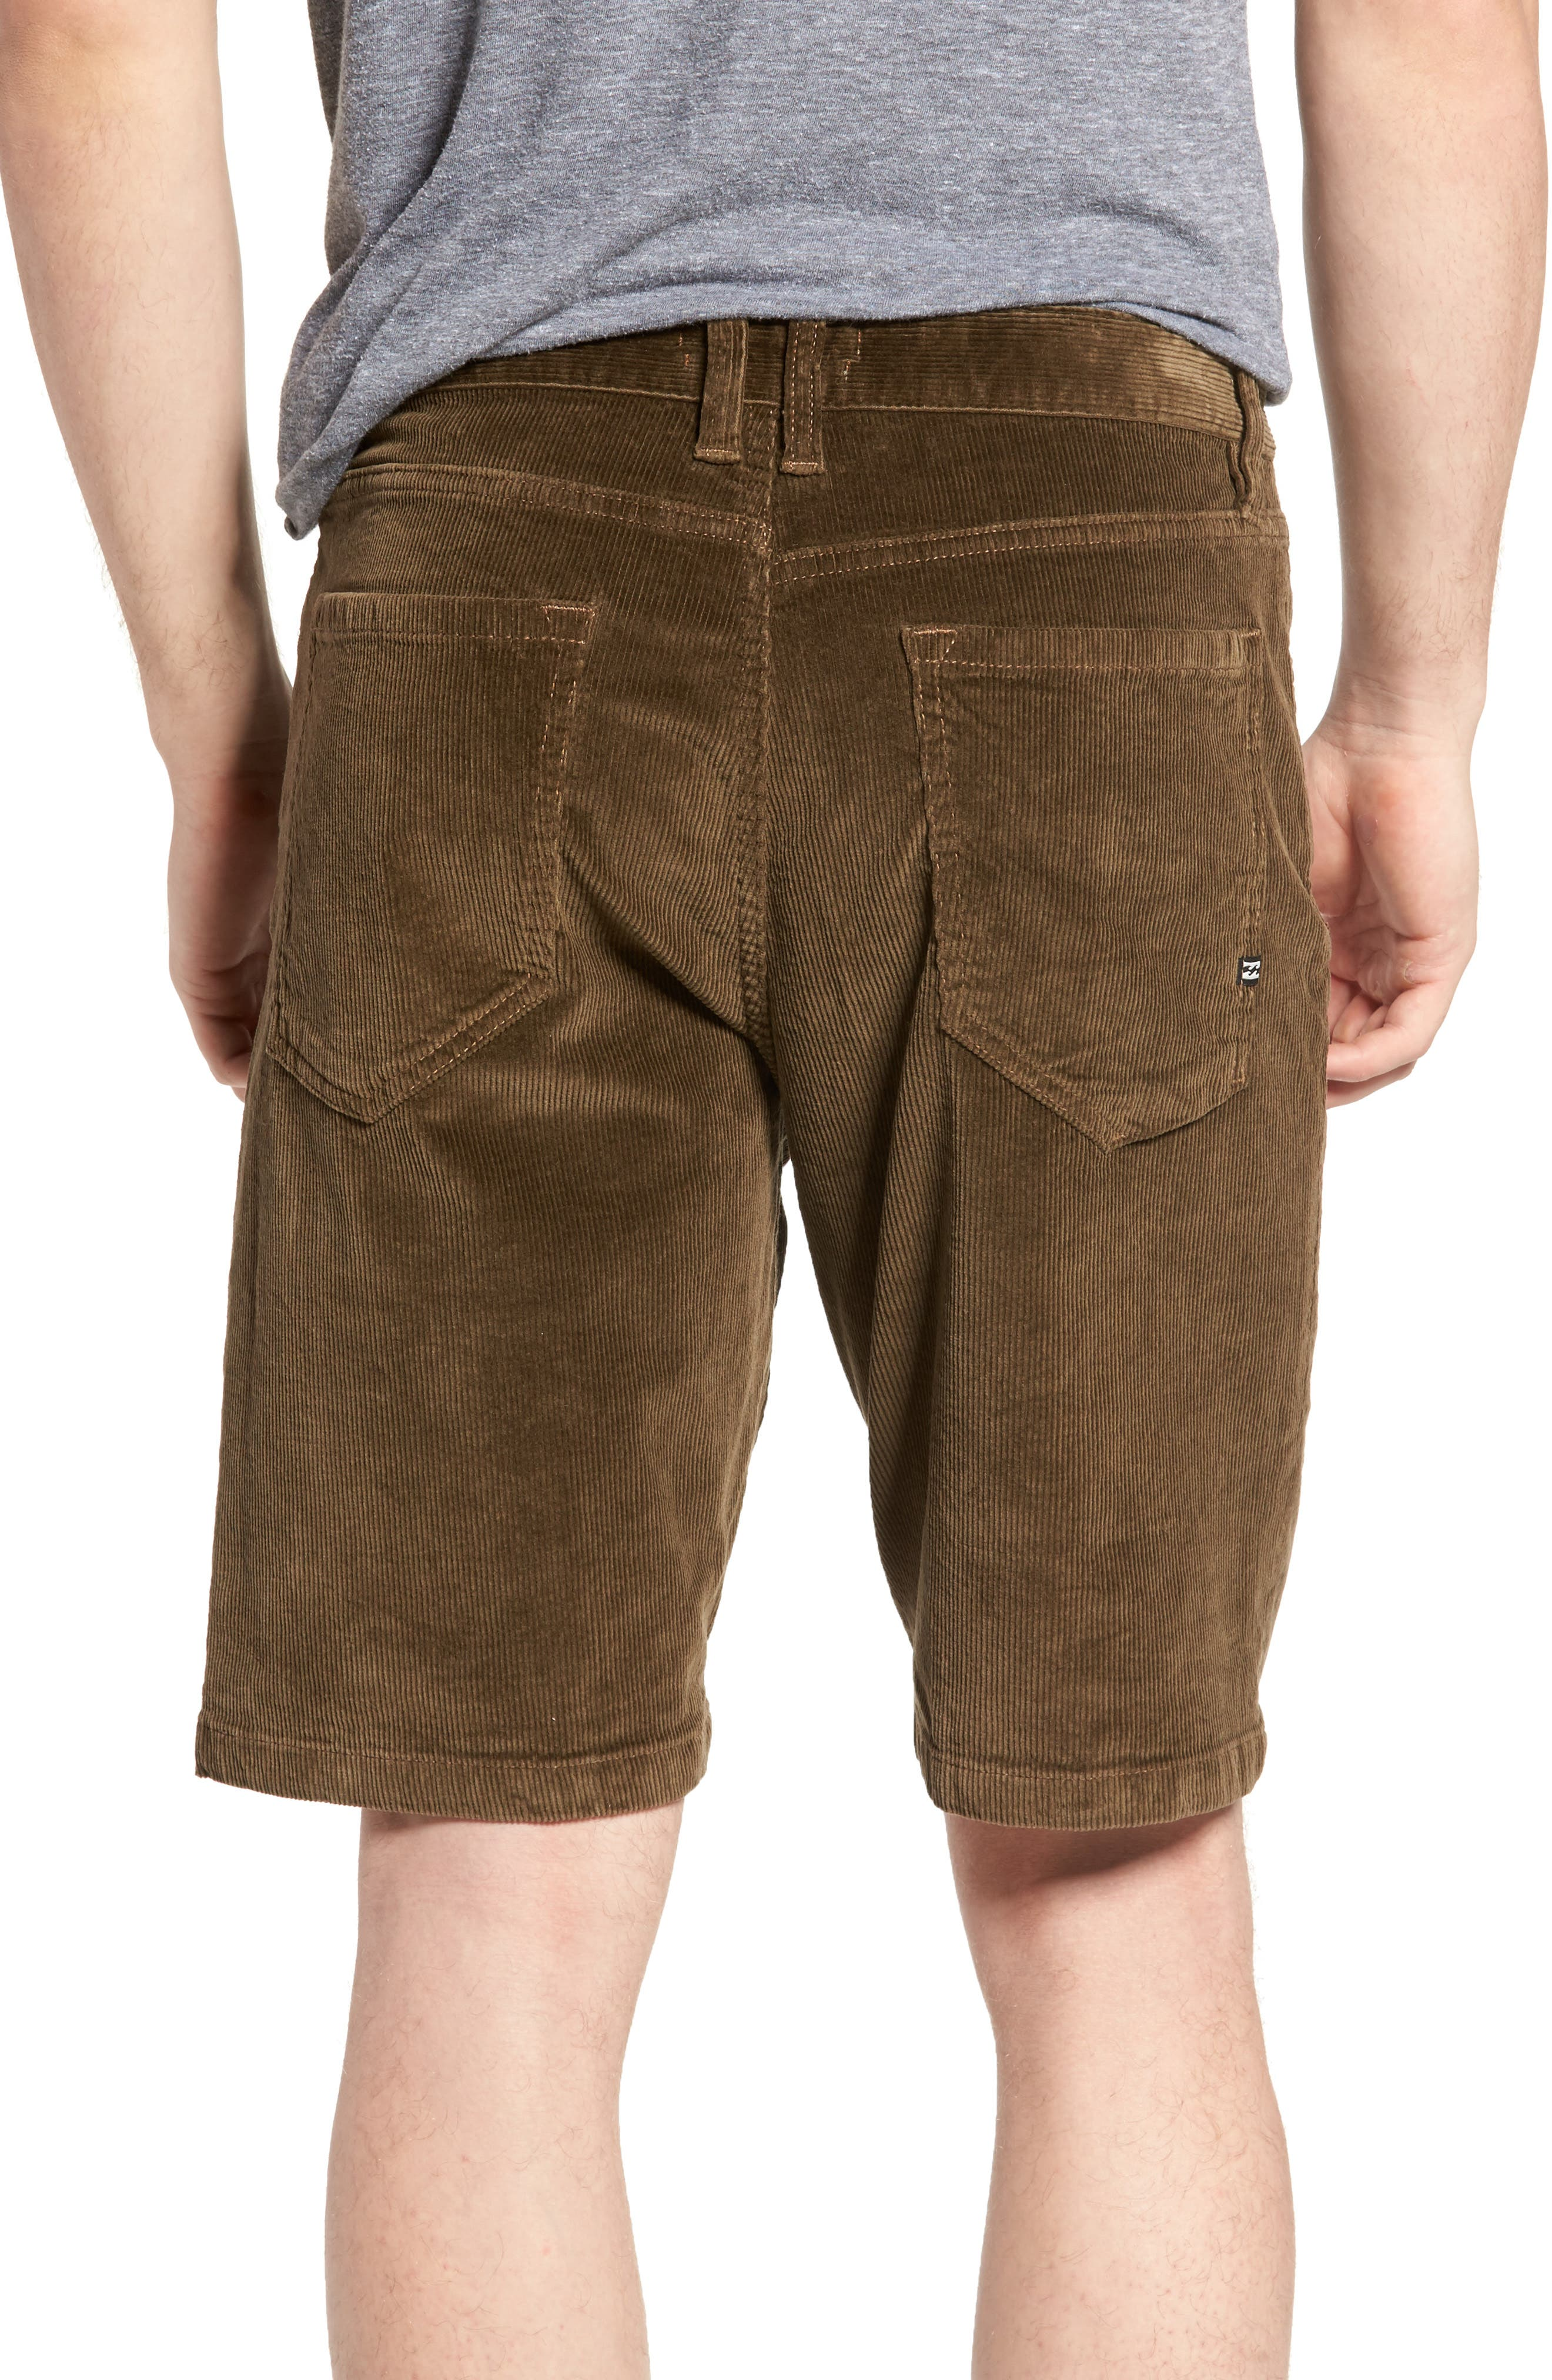 Outsider Corduroy Shorts,                             Alternate thumbnail 2, color,                             Brown